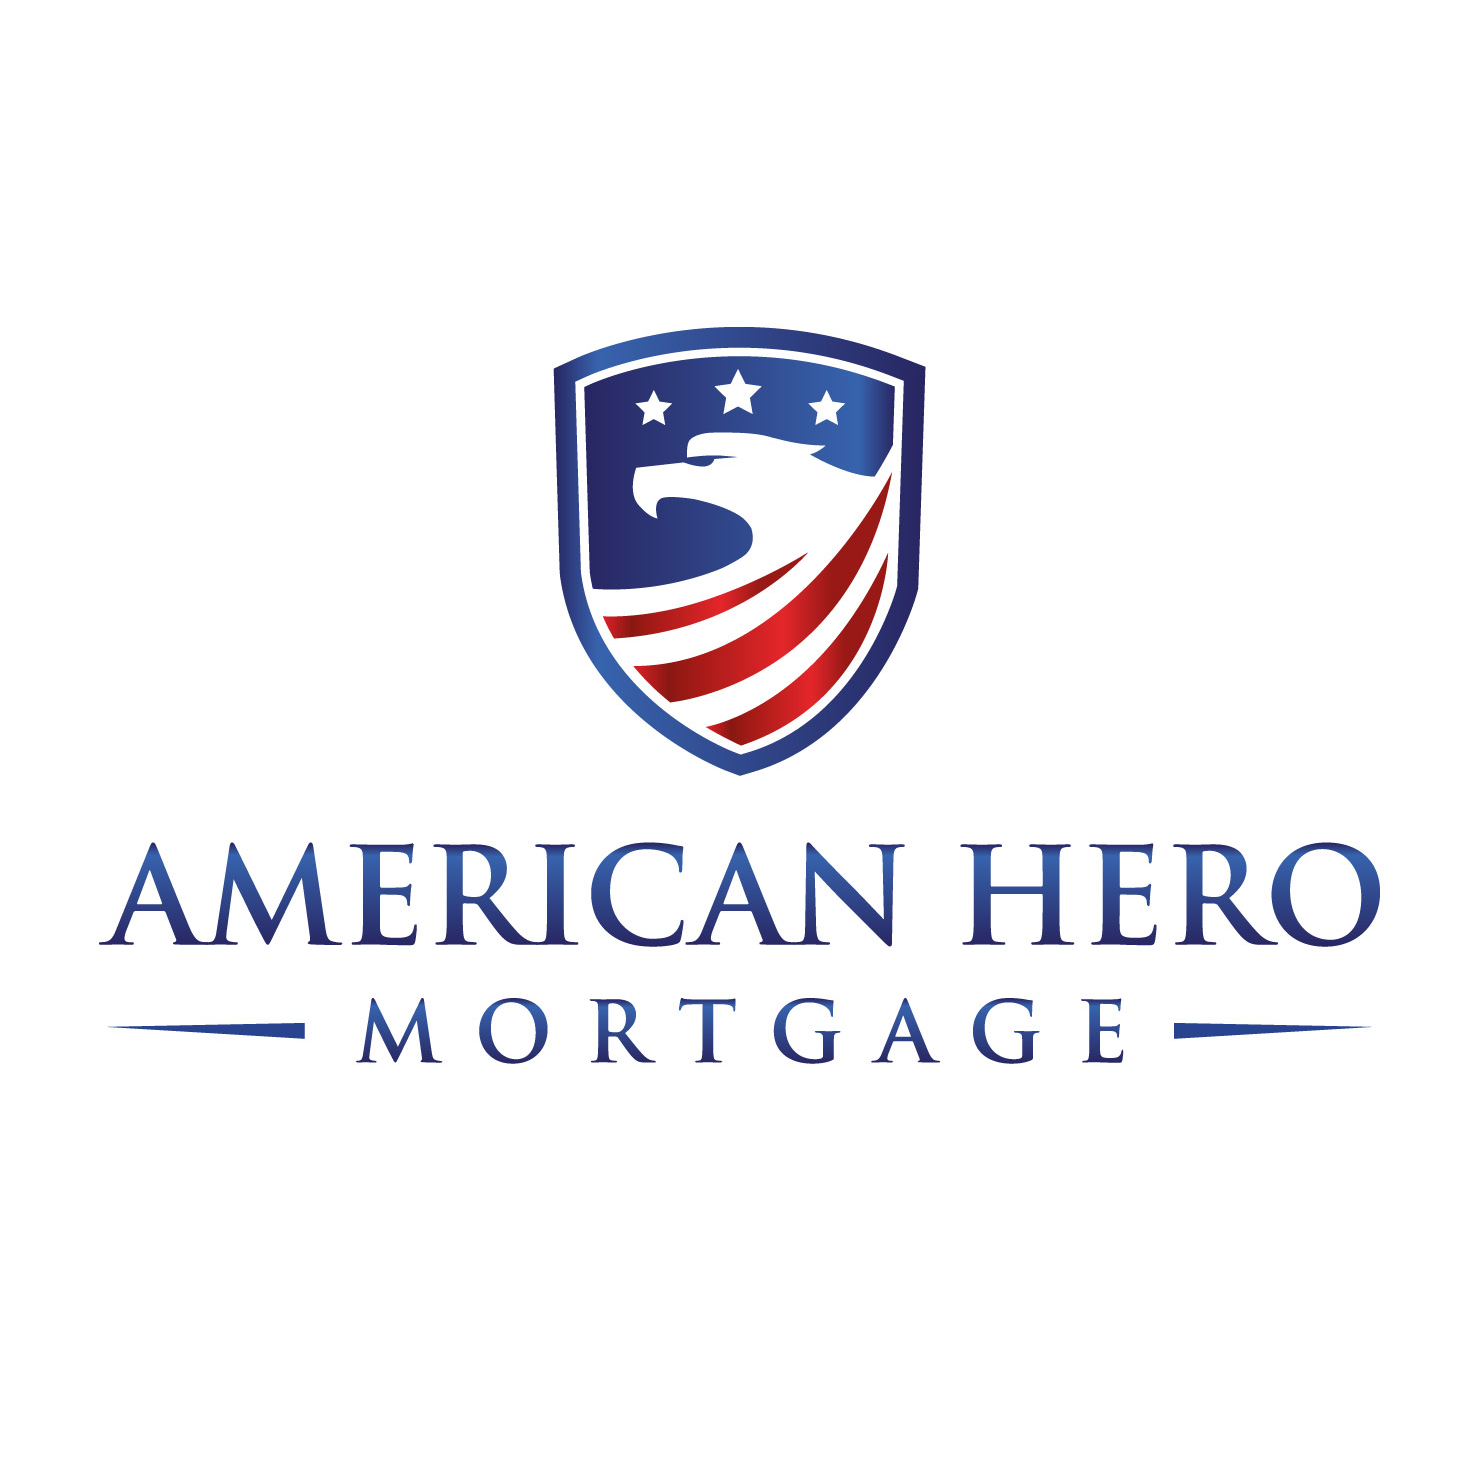 American Hero Mortgage - Fort Lauderdale, FL - Mortgage Brokers & Lenders